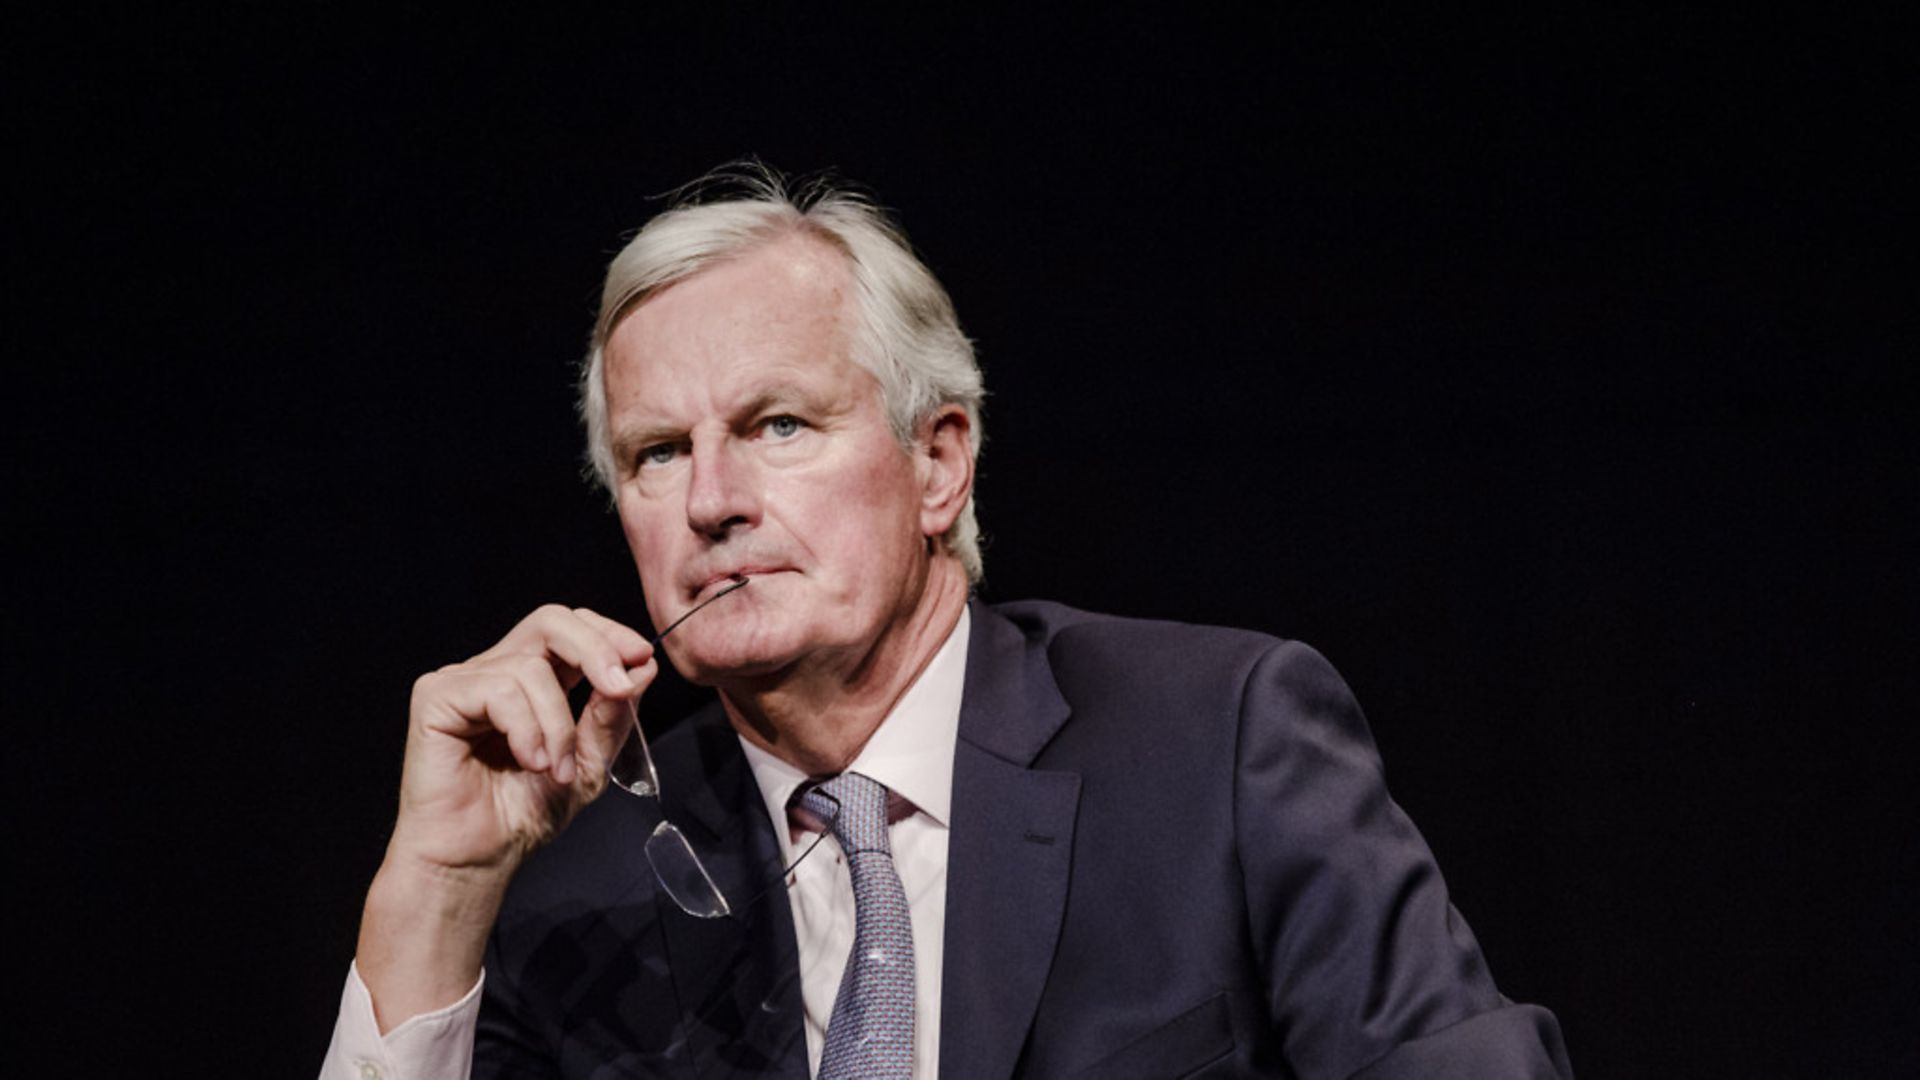 Michel Barnier has launched his own political faction within France's Conservative party, prompting speculation he could be preparing to take over as party leader by the next presidential election - Credit: Marlene Awaad/Bloomberg via Getty Images